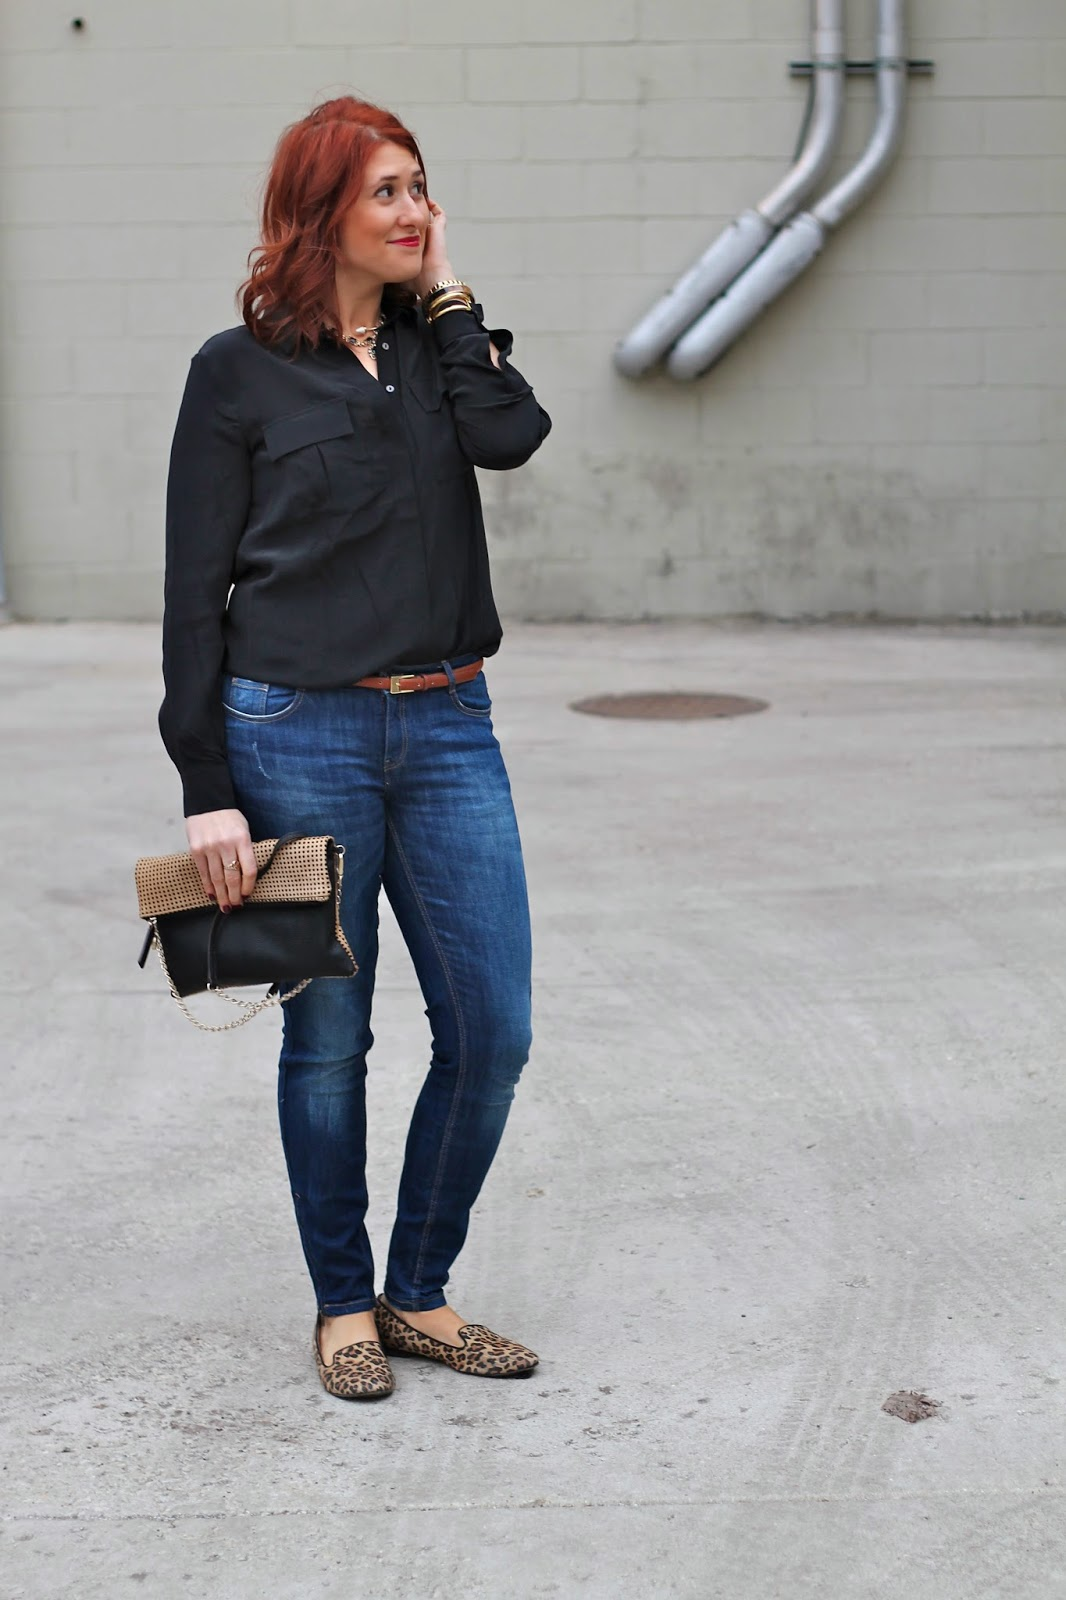 zara, jeans, denim